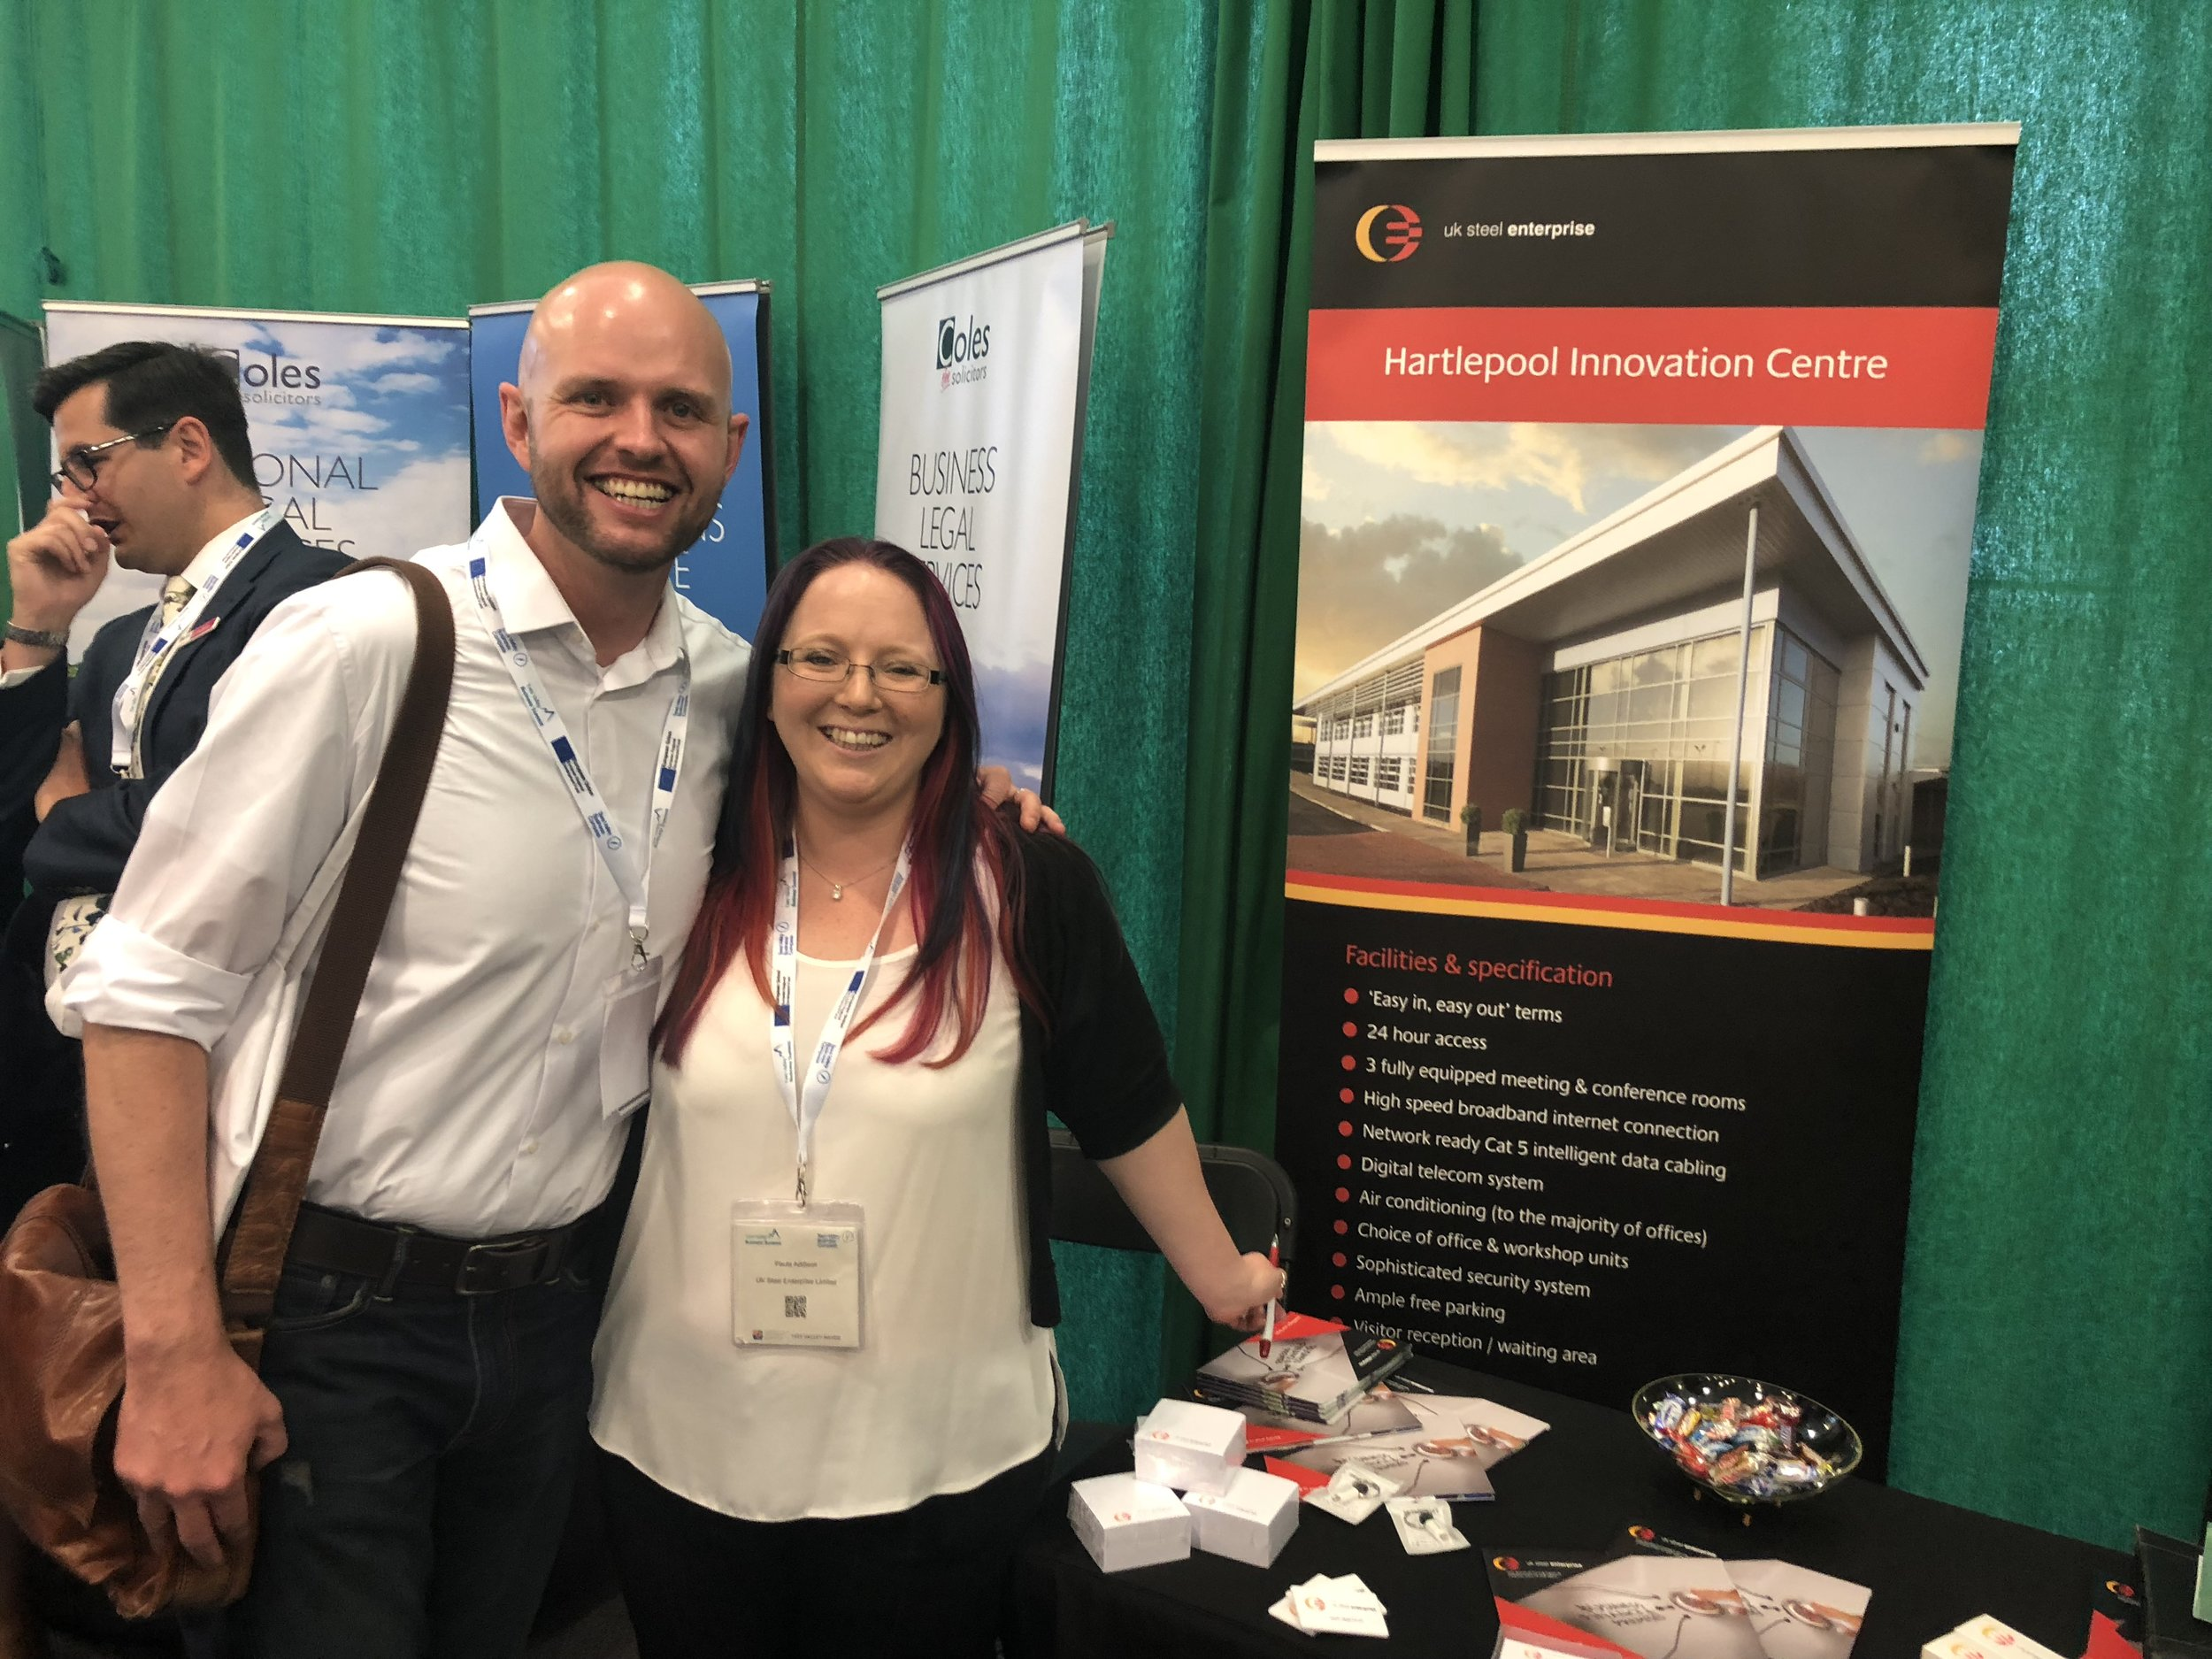 Matt Dowling, Co-Founder, Duco Digital with Paula Addison, UK Steel Enterprise at Tees Valley Business Summit